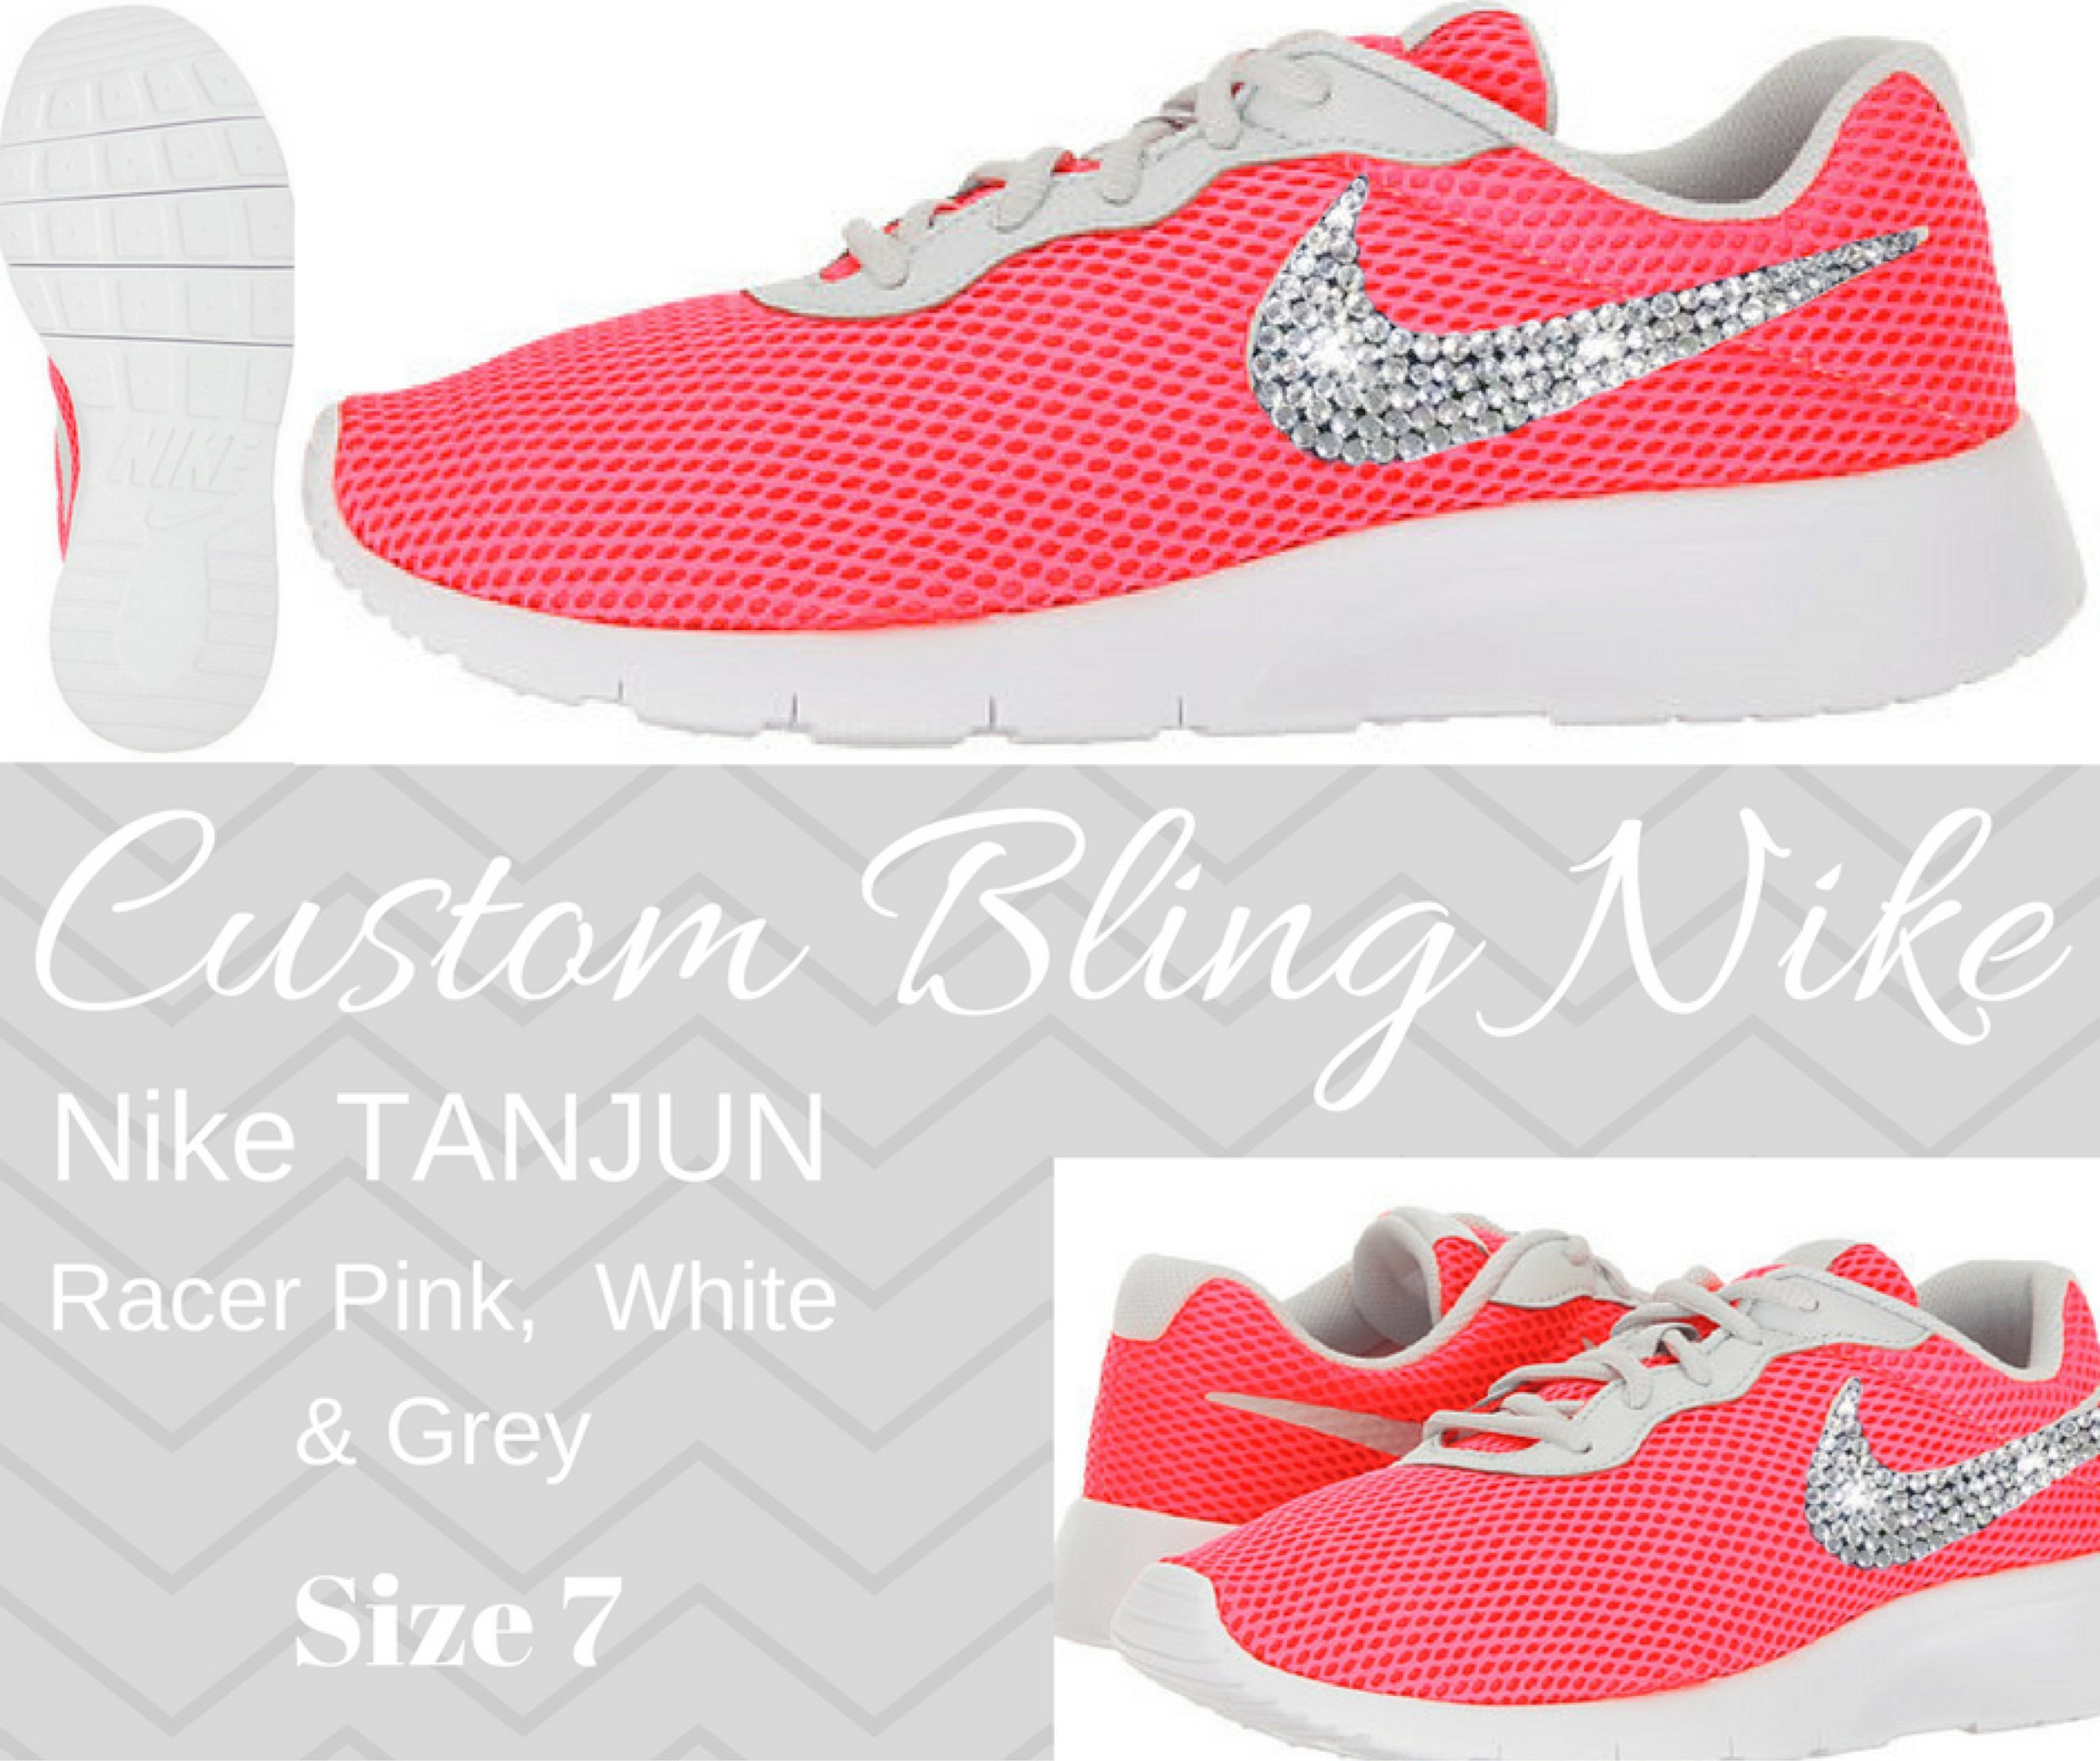 340c332a53d3 Nike Bling - Nike Tanjun - Running Shoes - Crystal - Bling Nike - Custom - Size  7 - Racer Pink by SparkleBoutique2U on Etsy